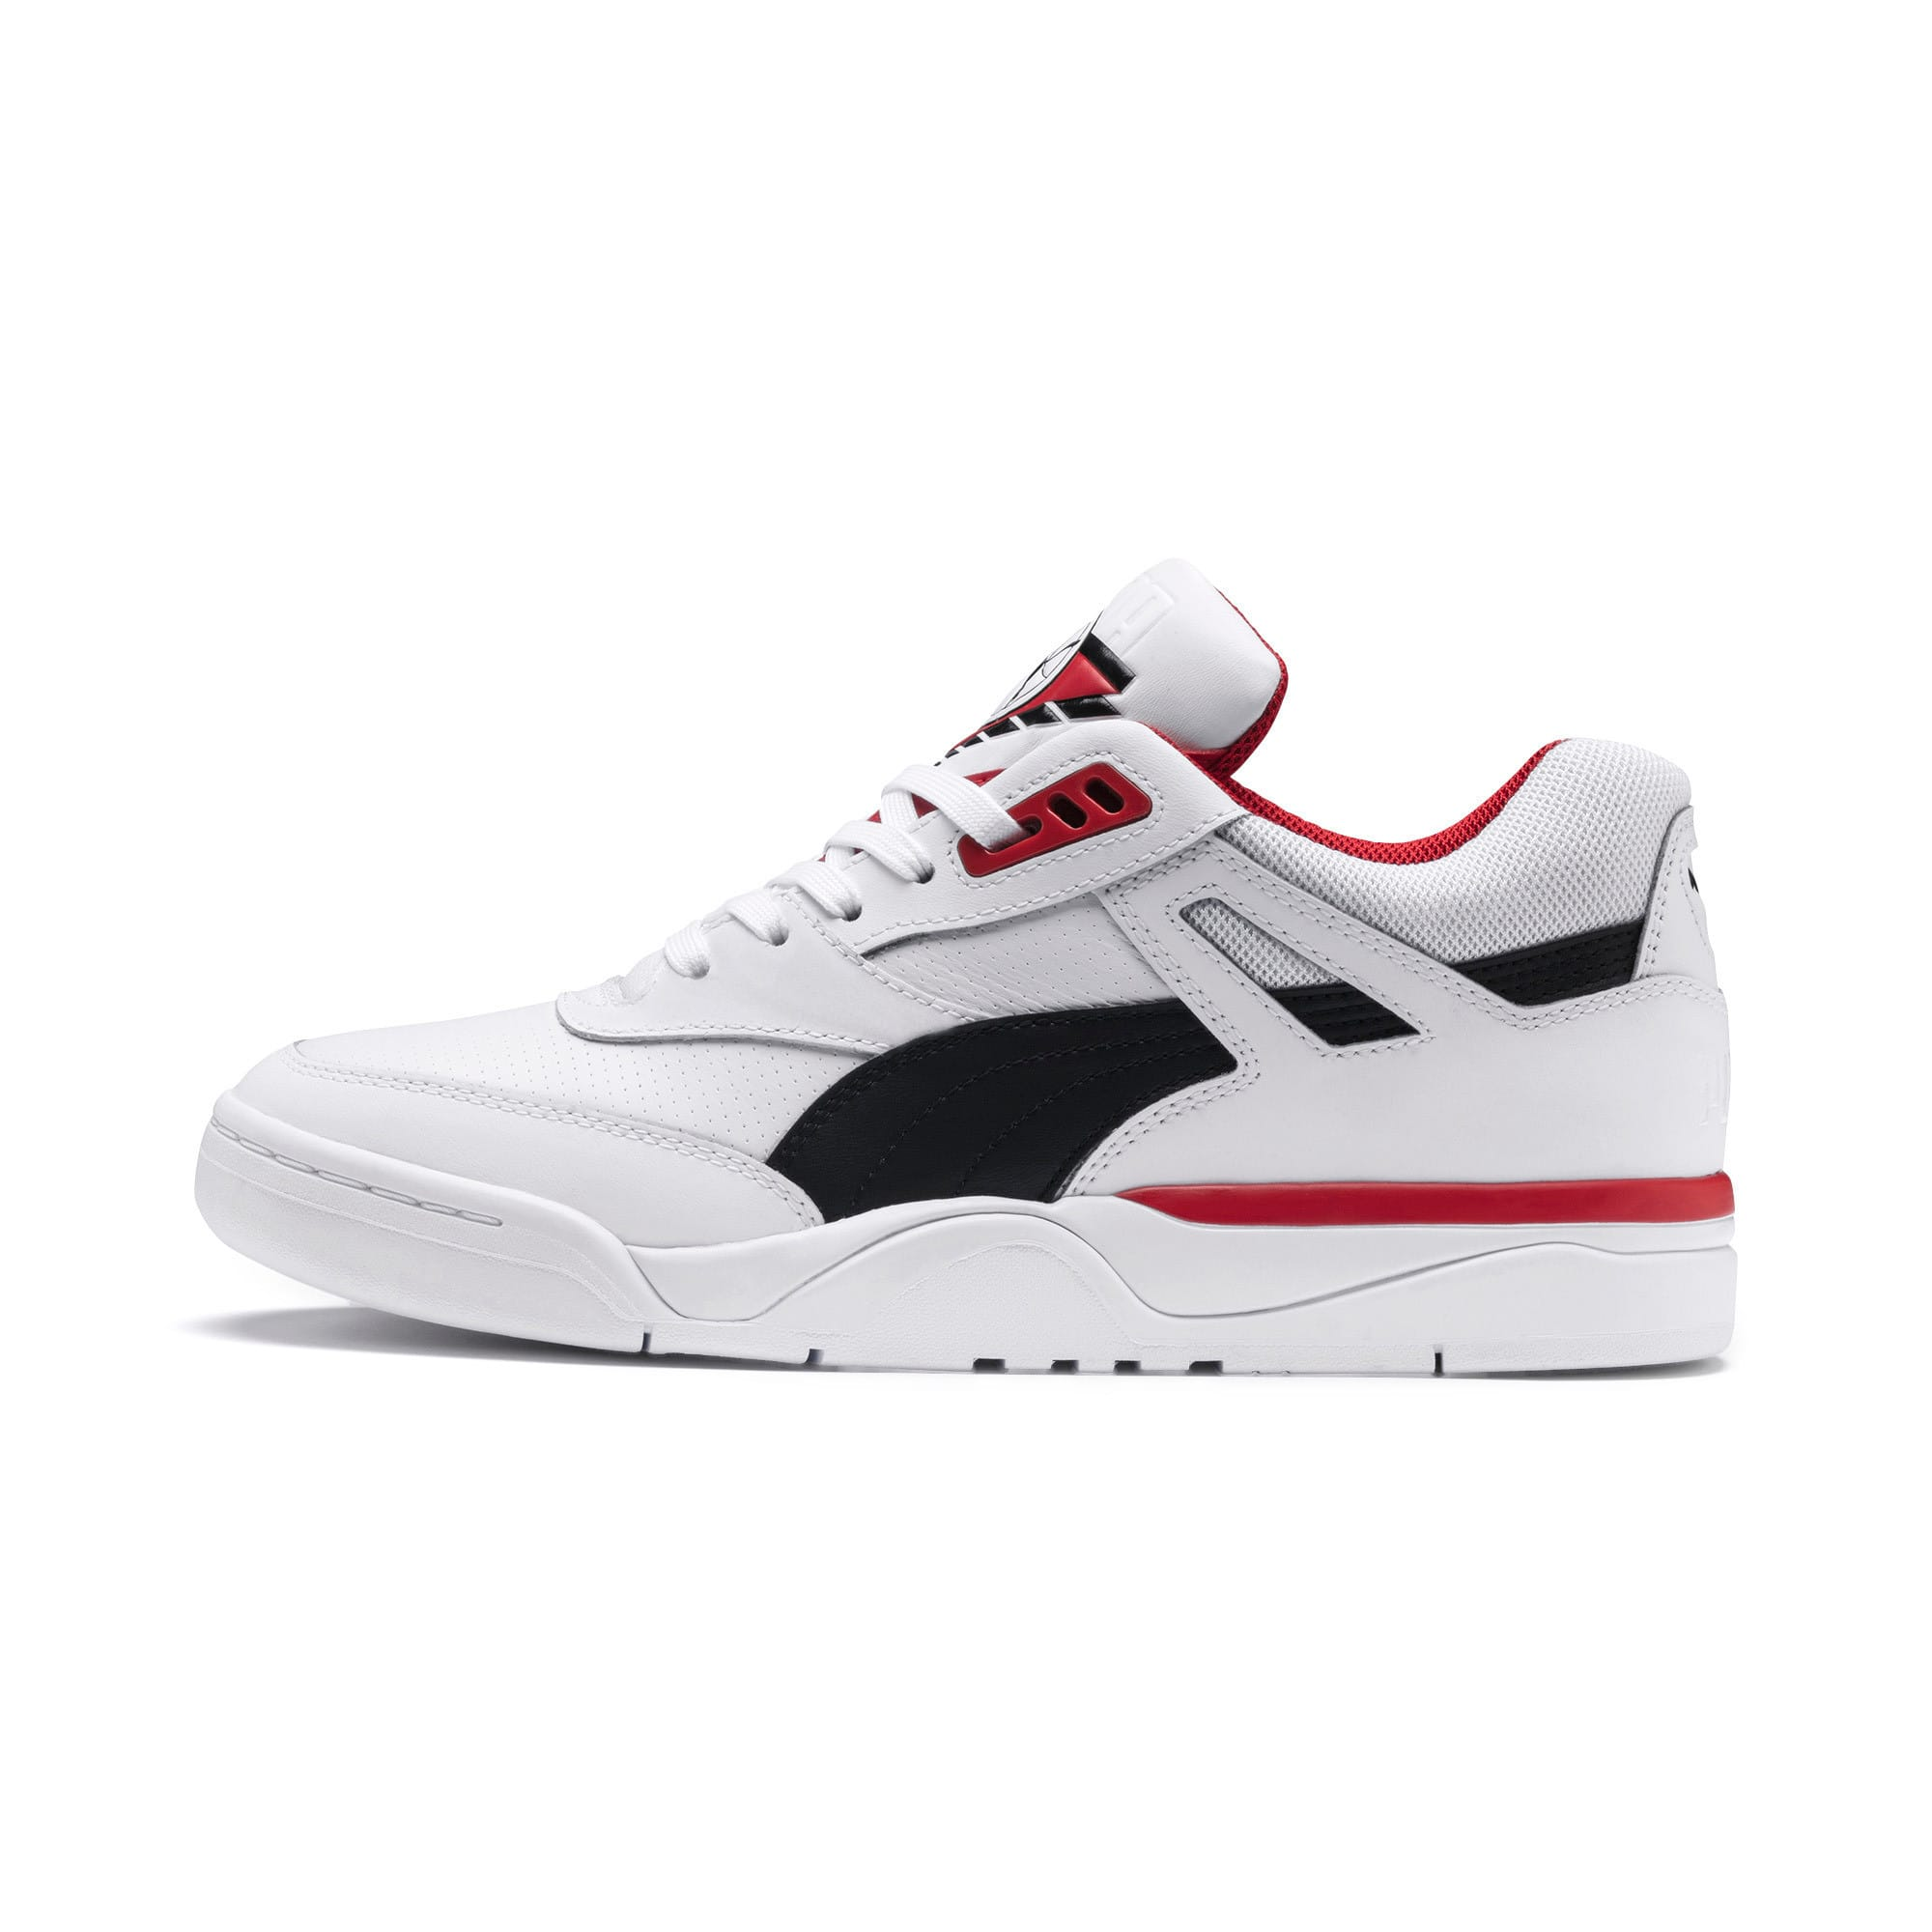 Anteprima 1 di Palace Guard Men's Basketball Trainers, Puma White-Puma Black-red, medio